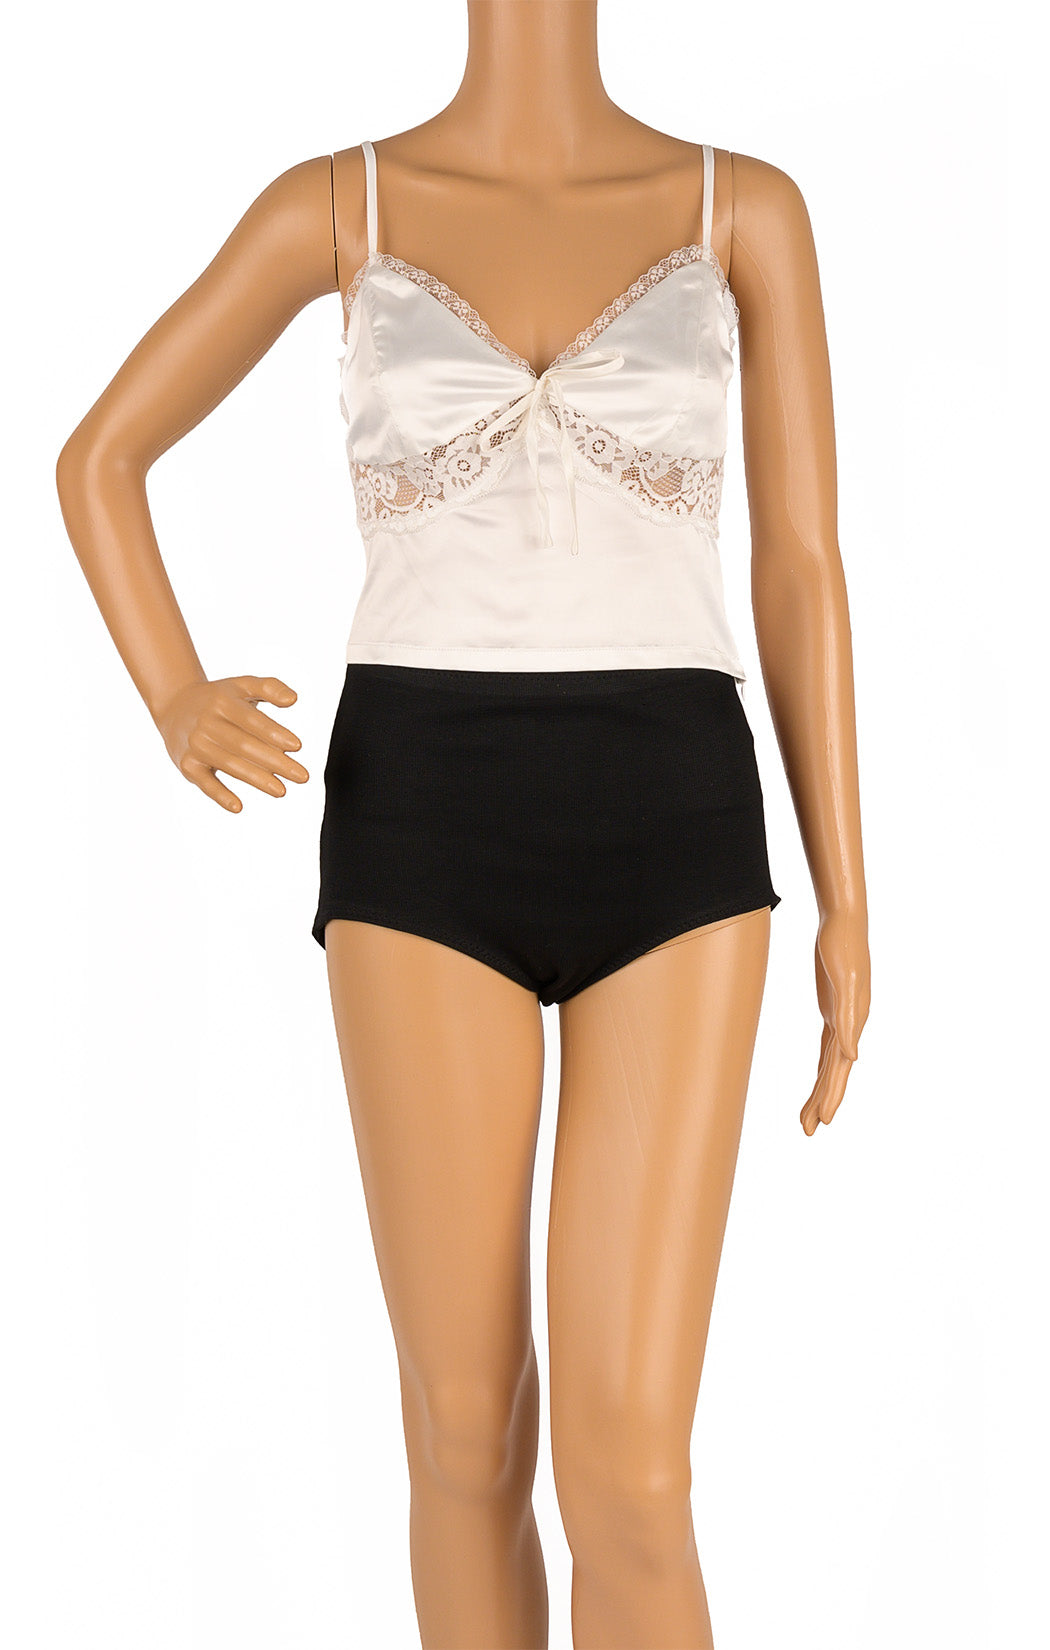 Front view of TIGER MIST with tags Camisole Size: Medium